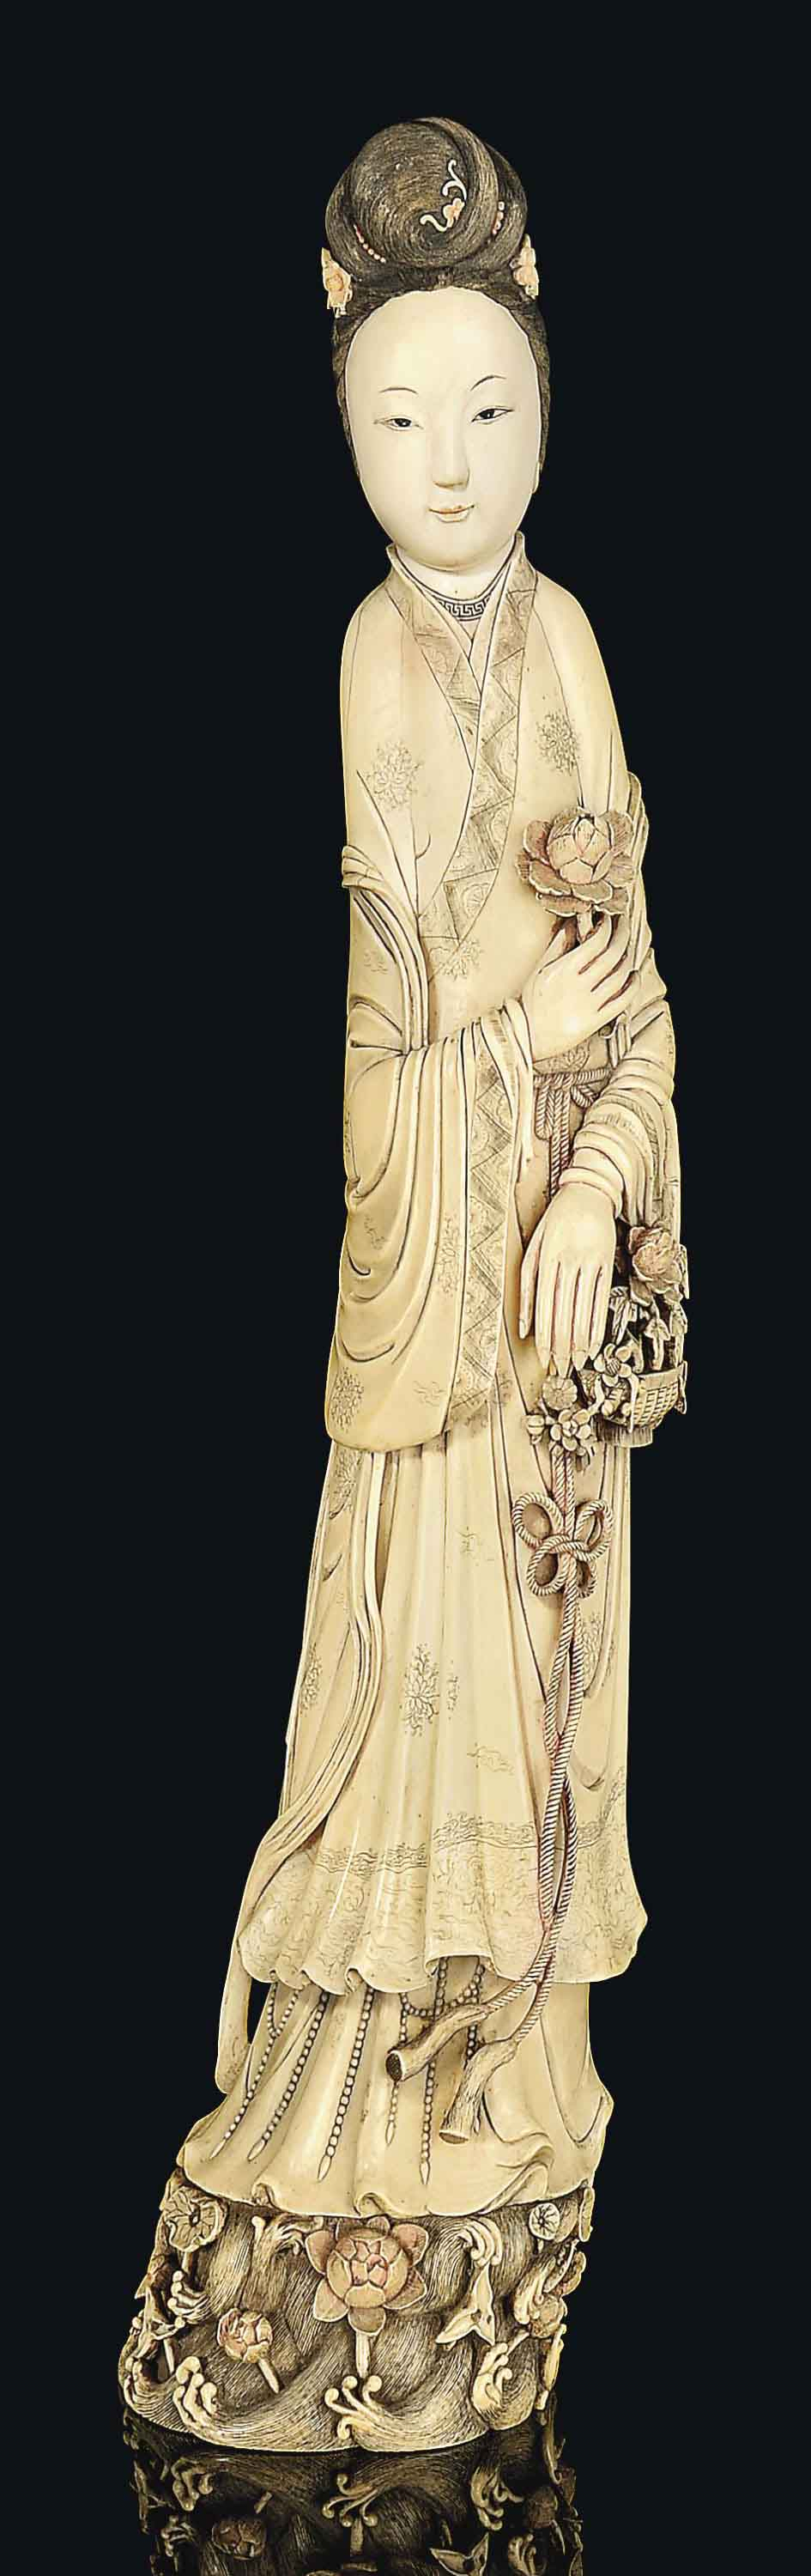 A PAINTED IVORY FIGURE OF A MAIDEN